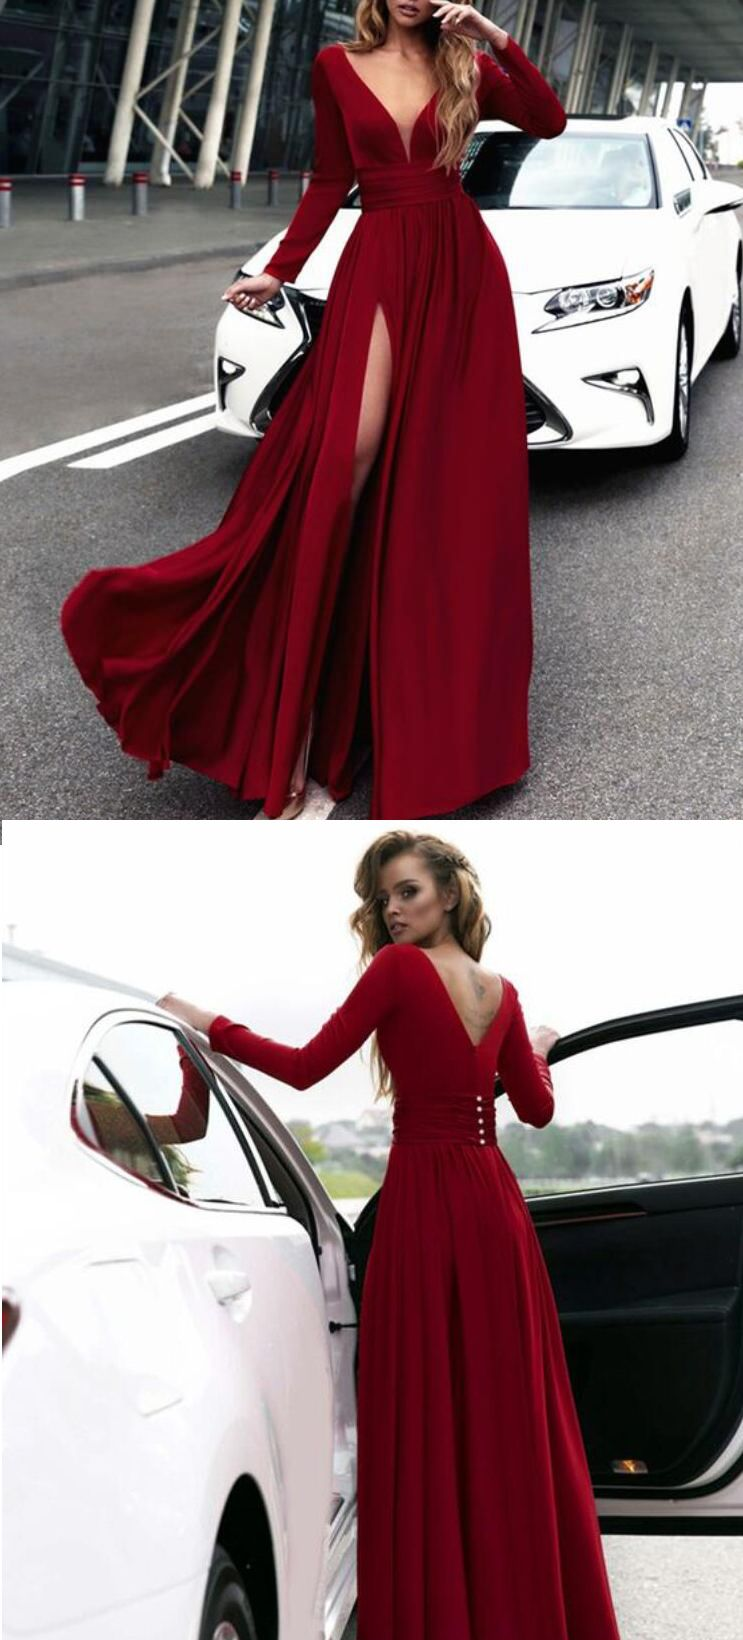 Long Sleeves Formal Evening Gown Wine Red,V Neck Prom Dress With High Slit